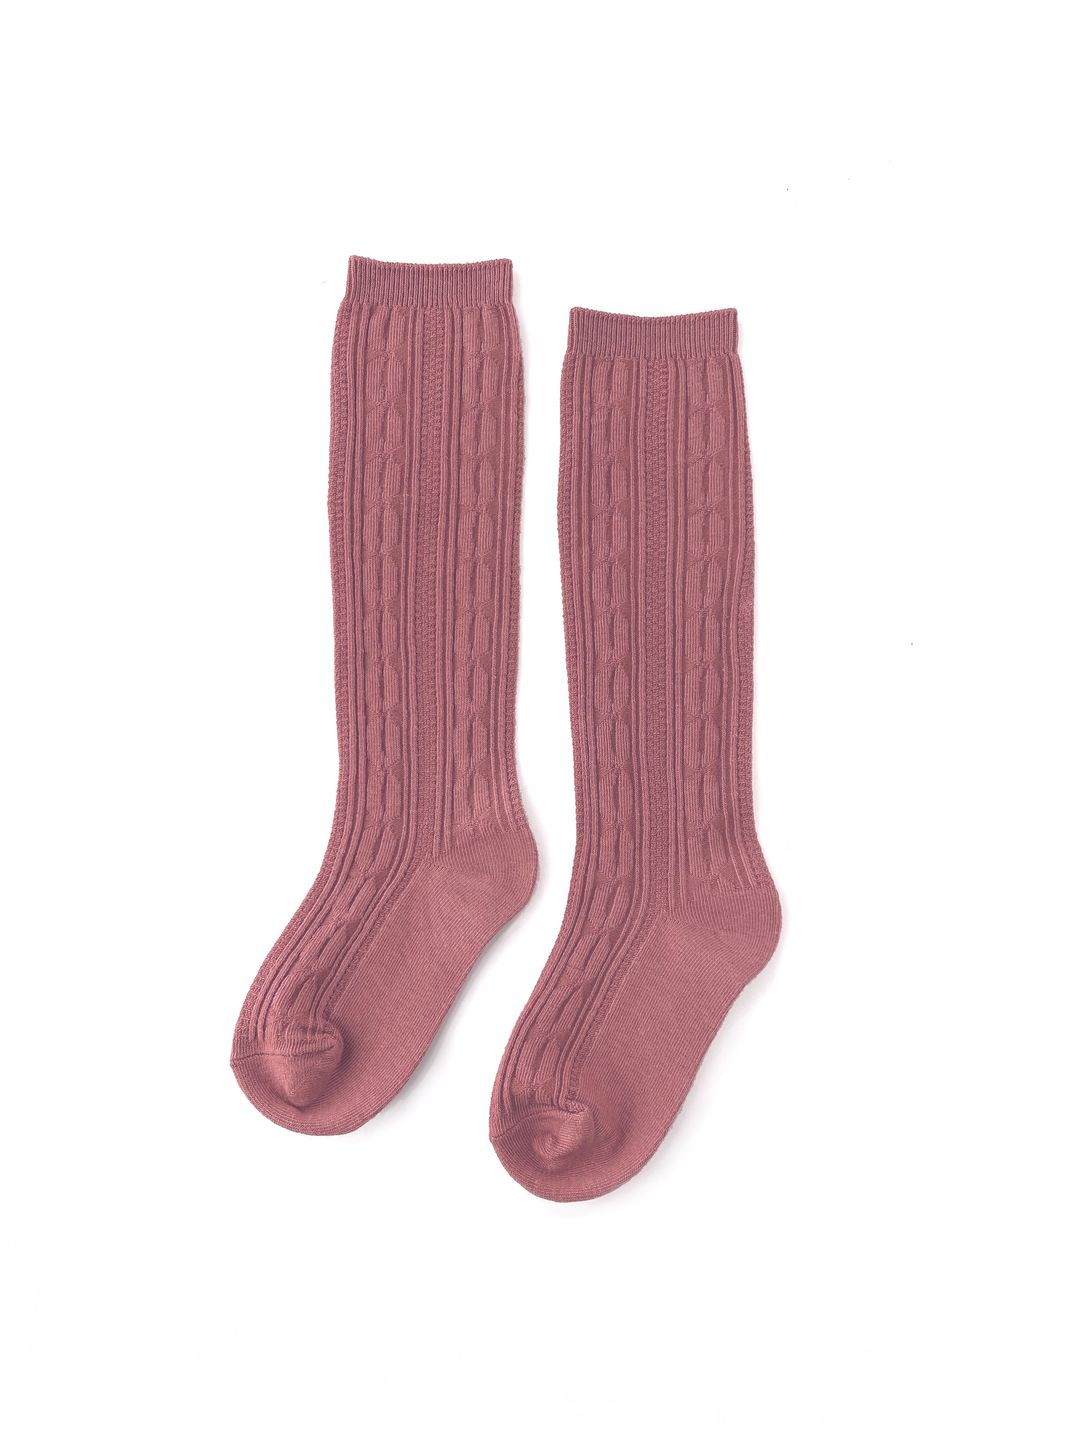 Mauve Cable Knit Knee High Socks